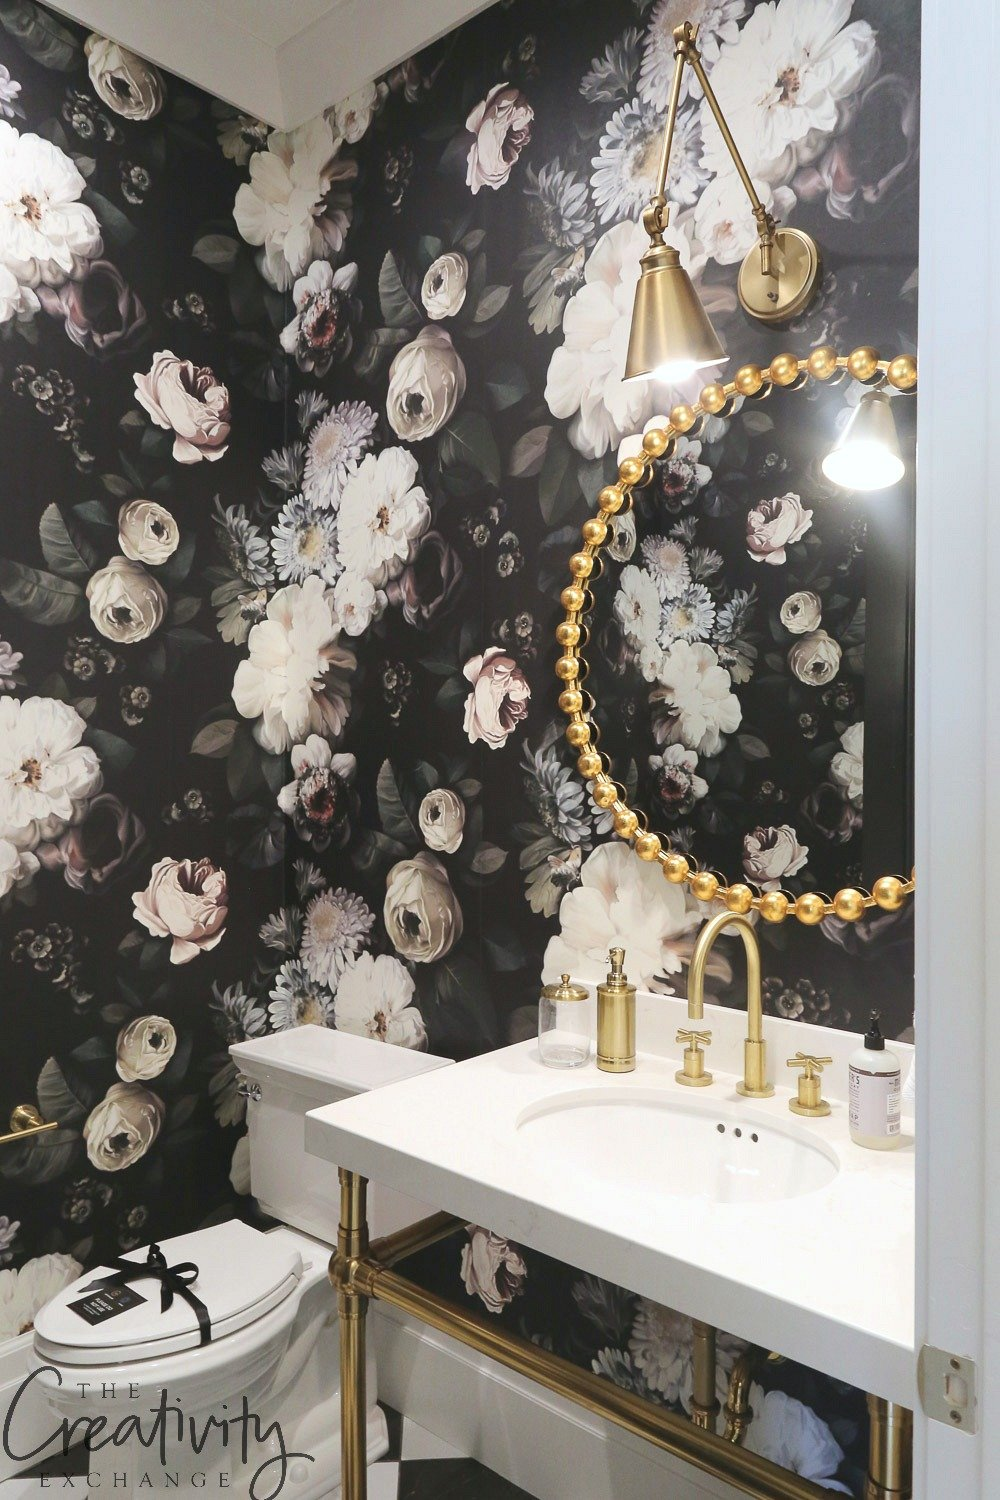 Black and white floral powder room wallpaper.